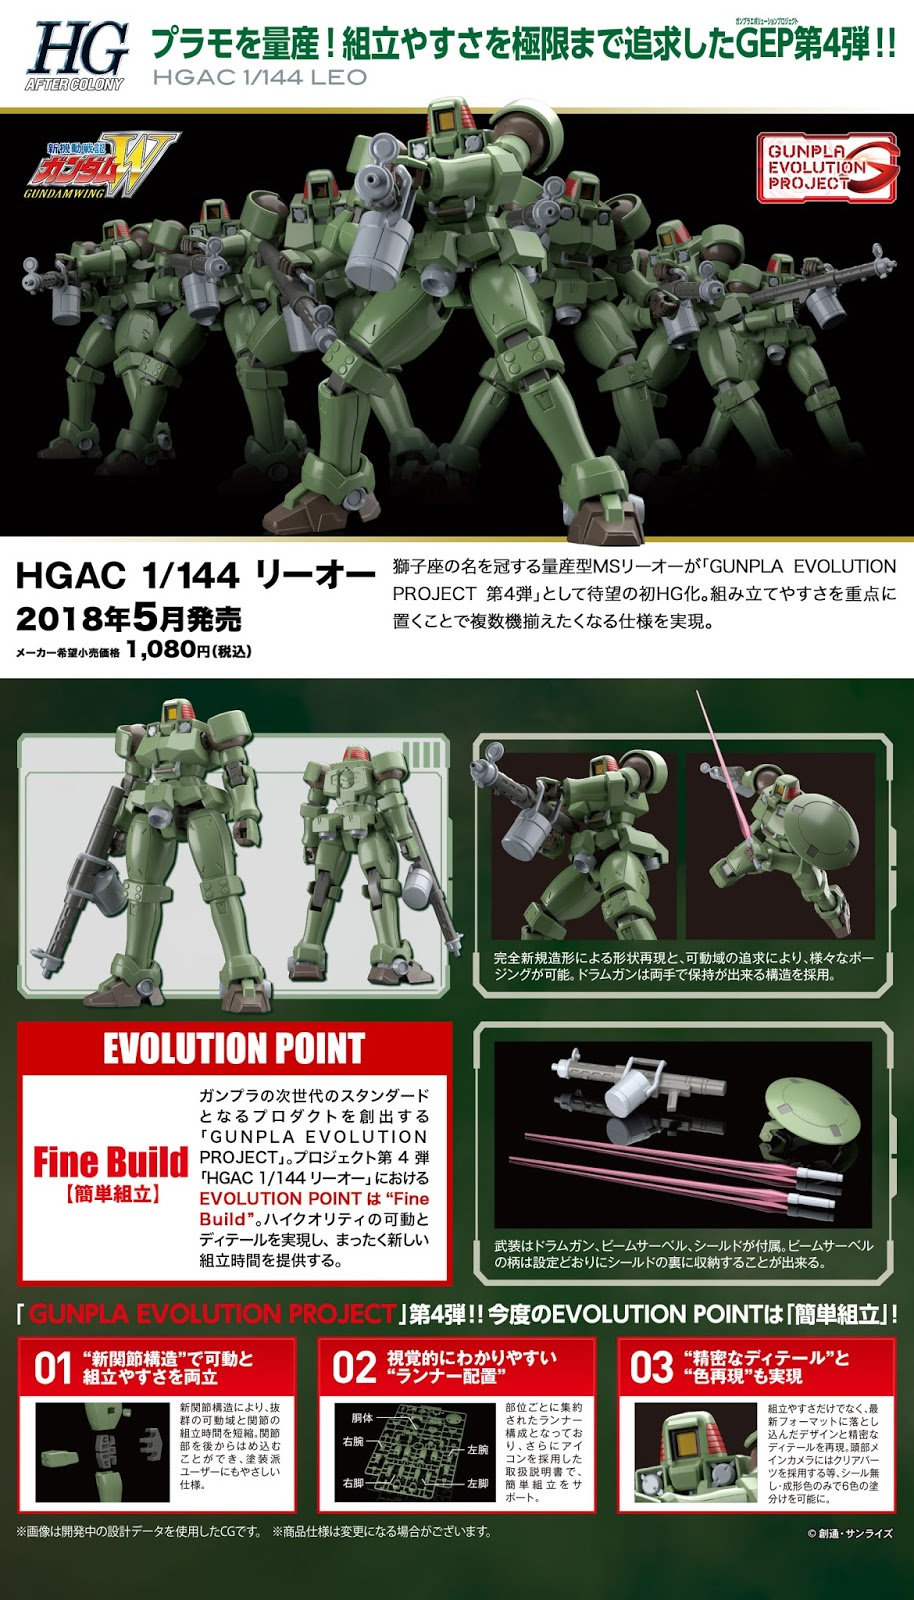 HGAC 1/144 OZ-06MS Leo - Release Info - Gundam Kits Collection News and Reviews